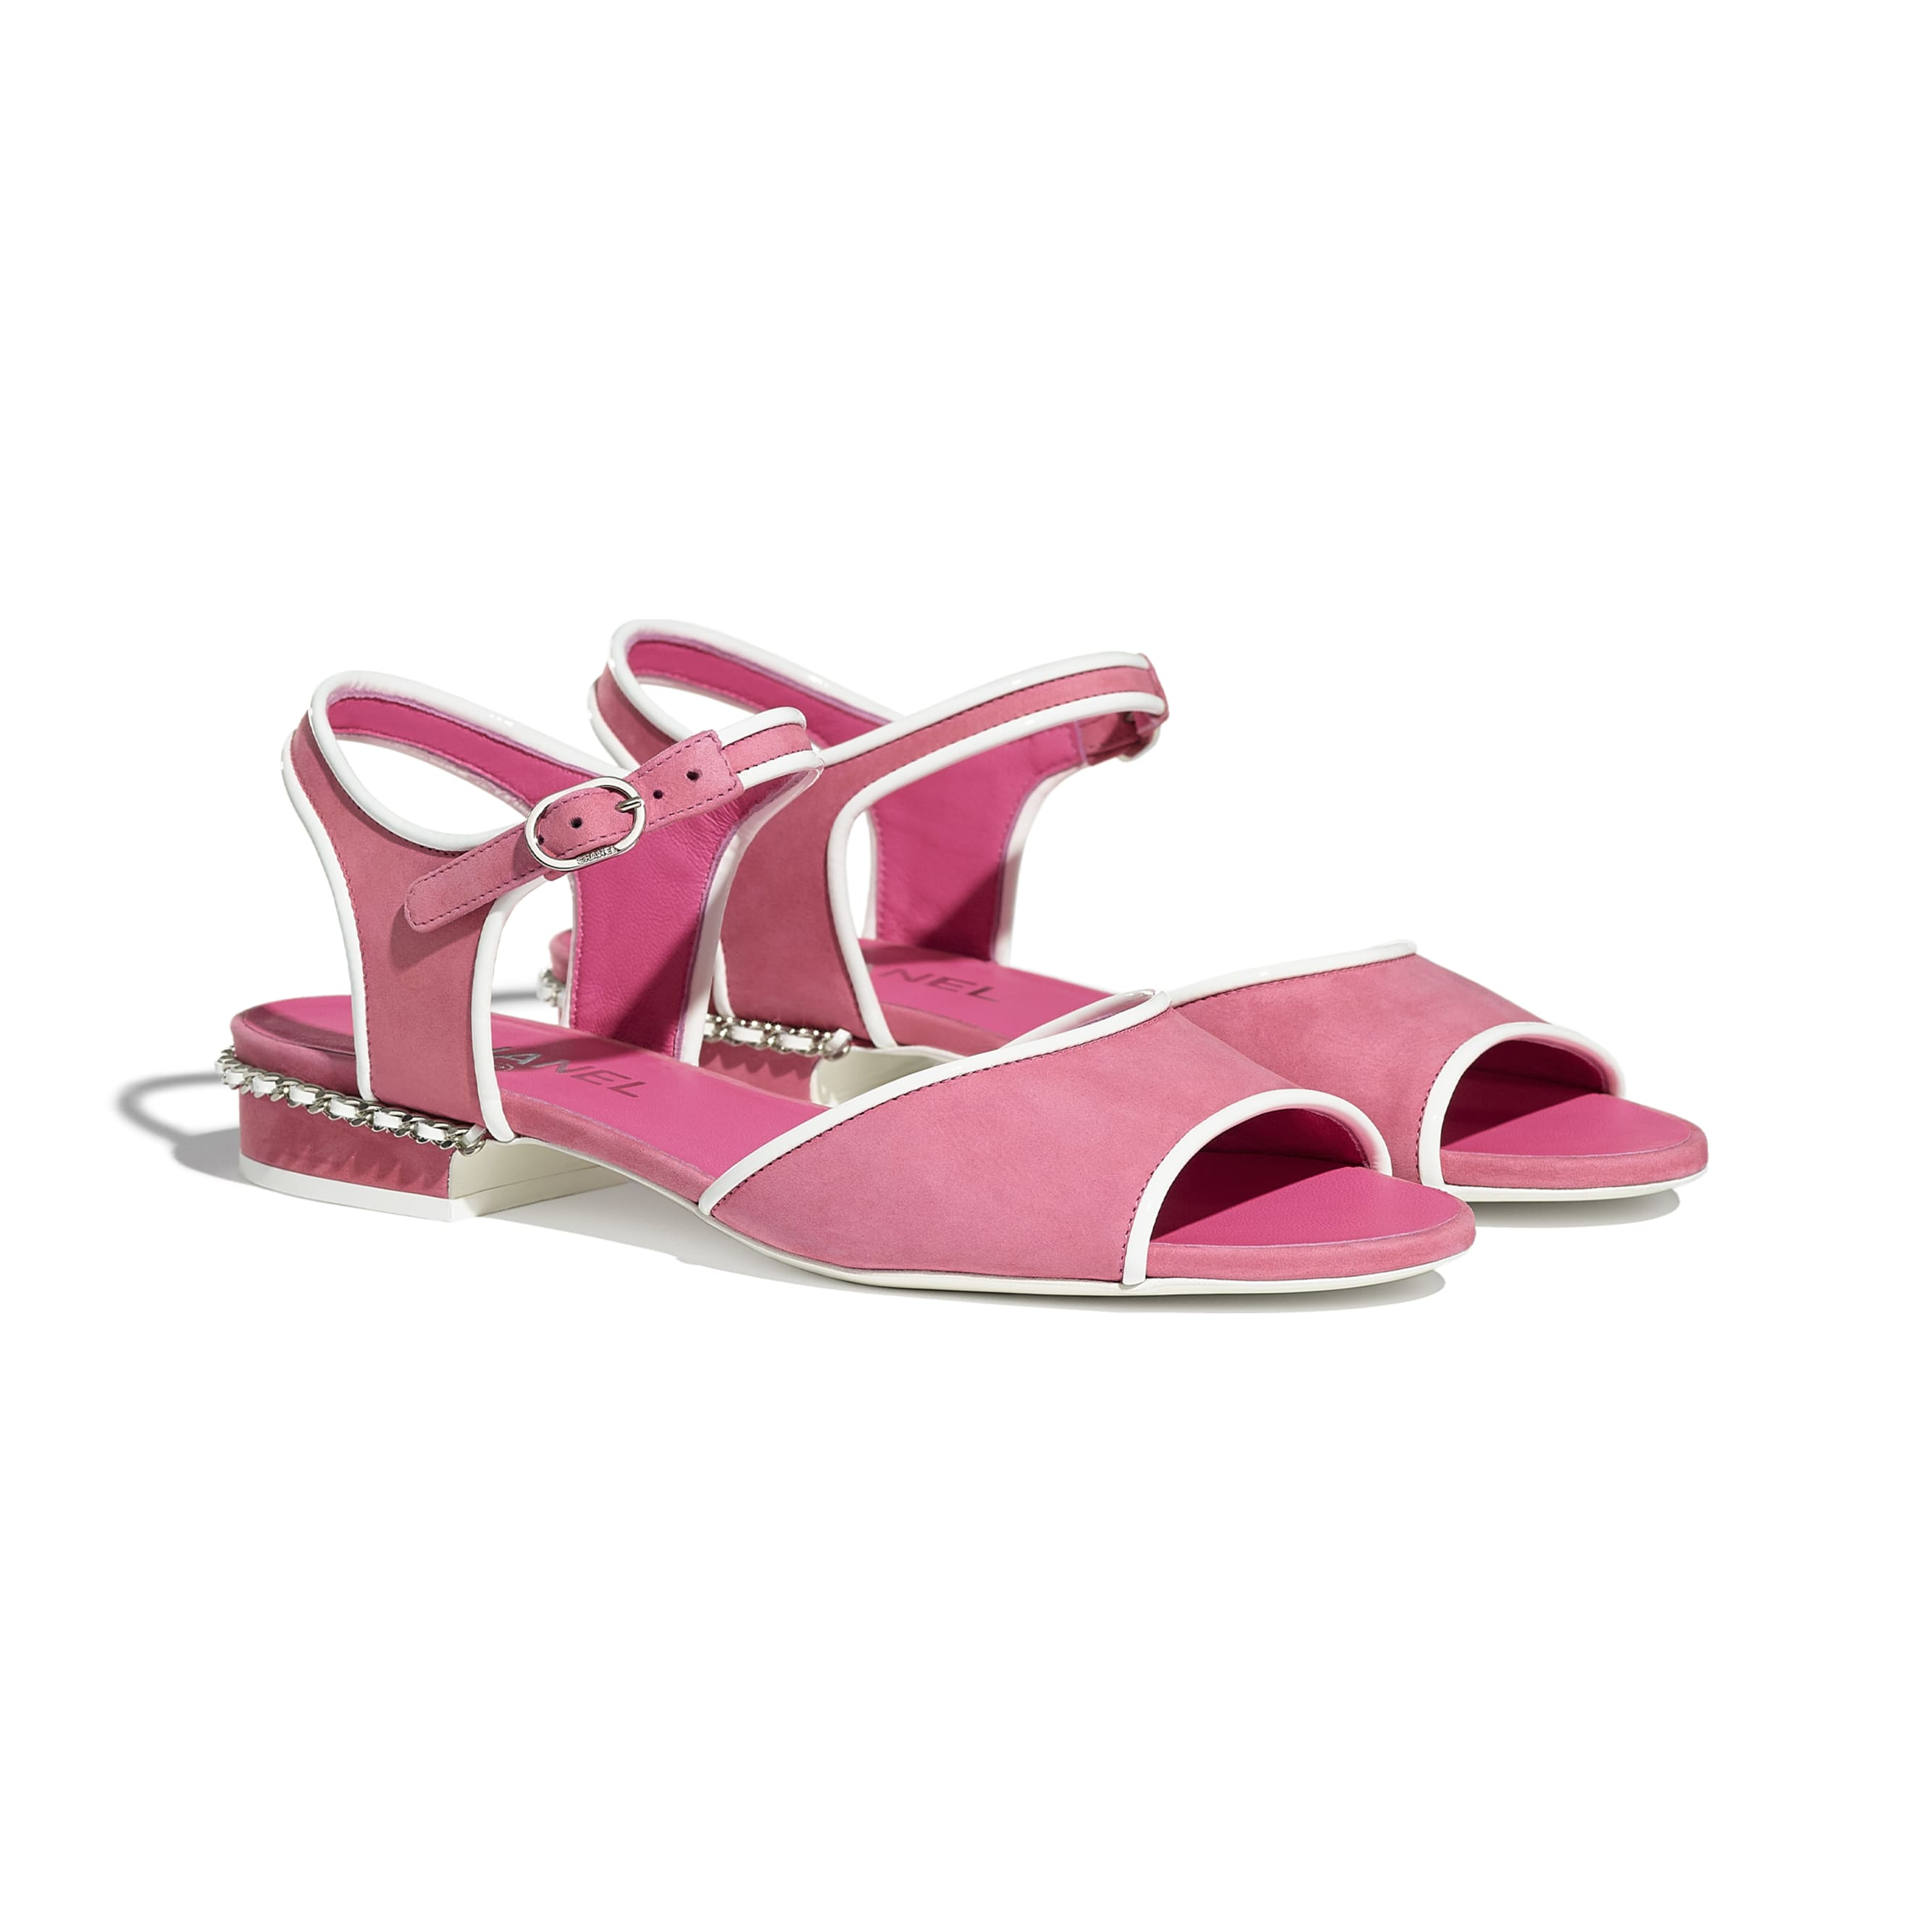 Sandals - Pink - Matte Velvet Calfskin - CHANEL - Alternative view - see standard sized version